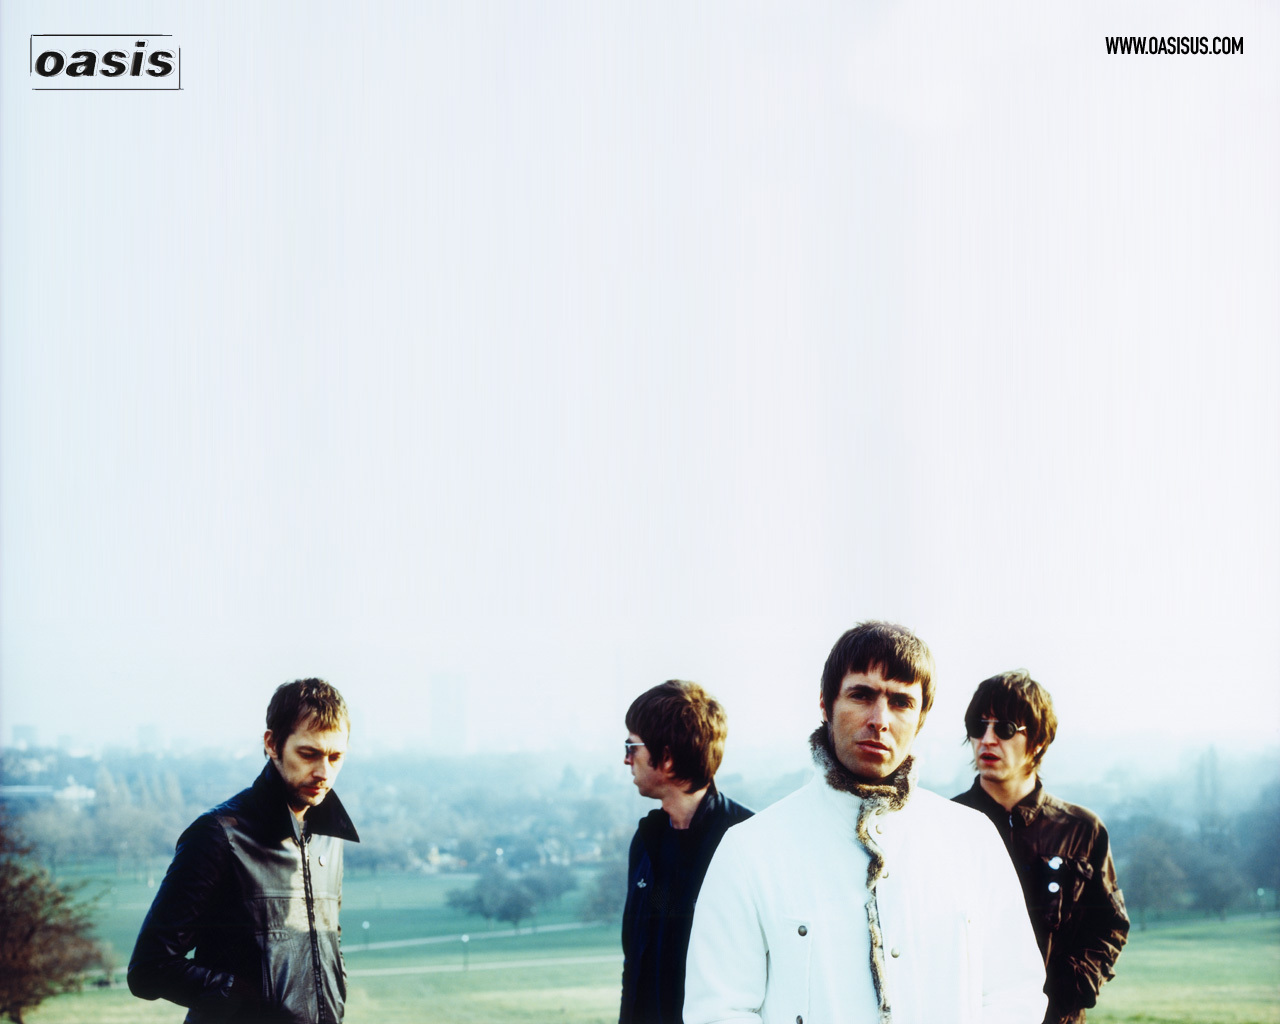 Oasis Wallpaper - Oasis Band 2005 , HD Wallpaper & Backgrounds